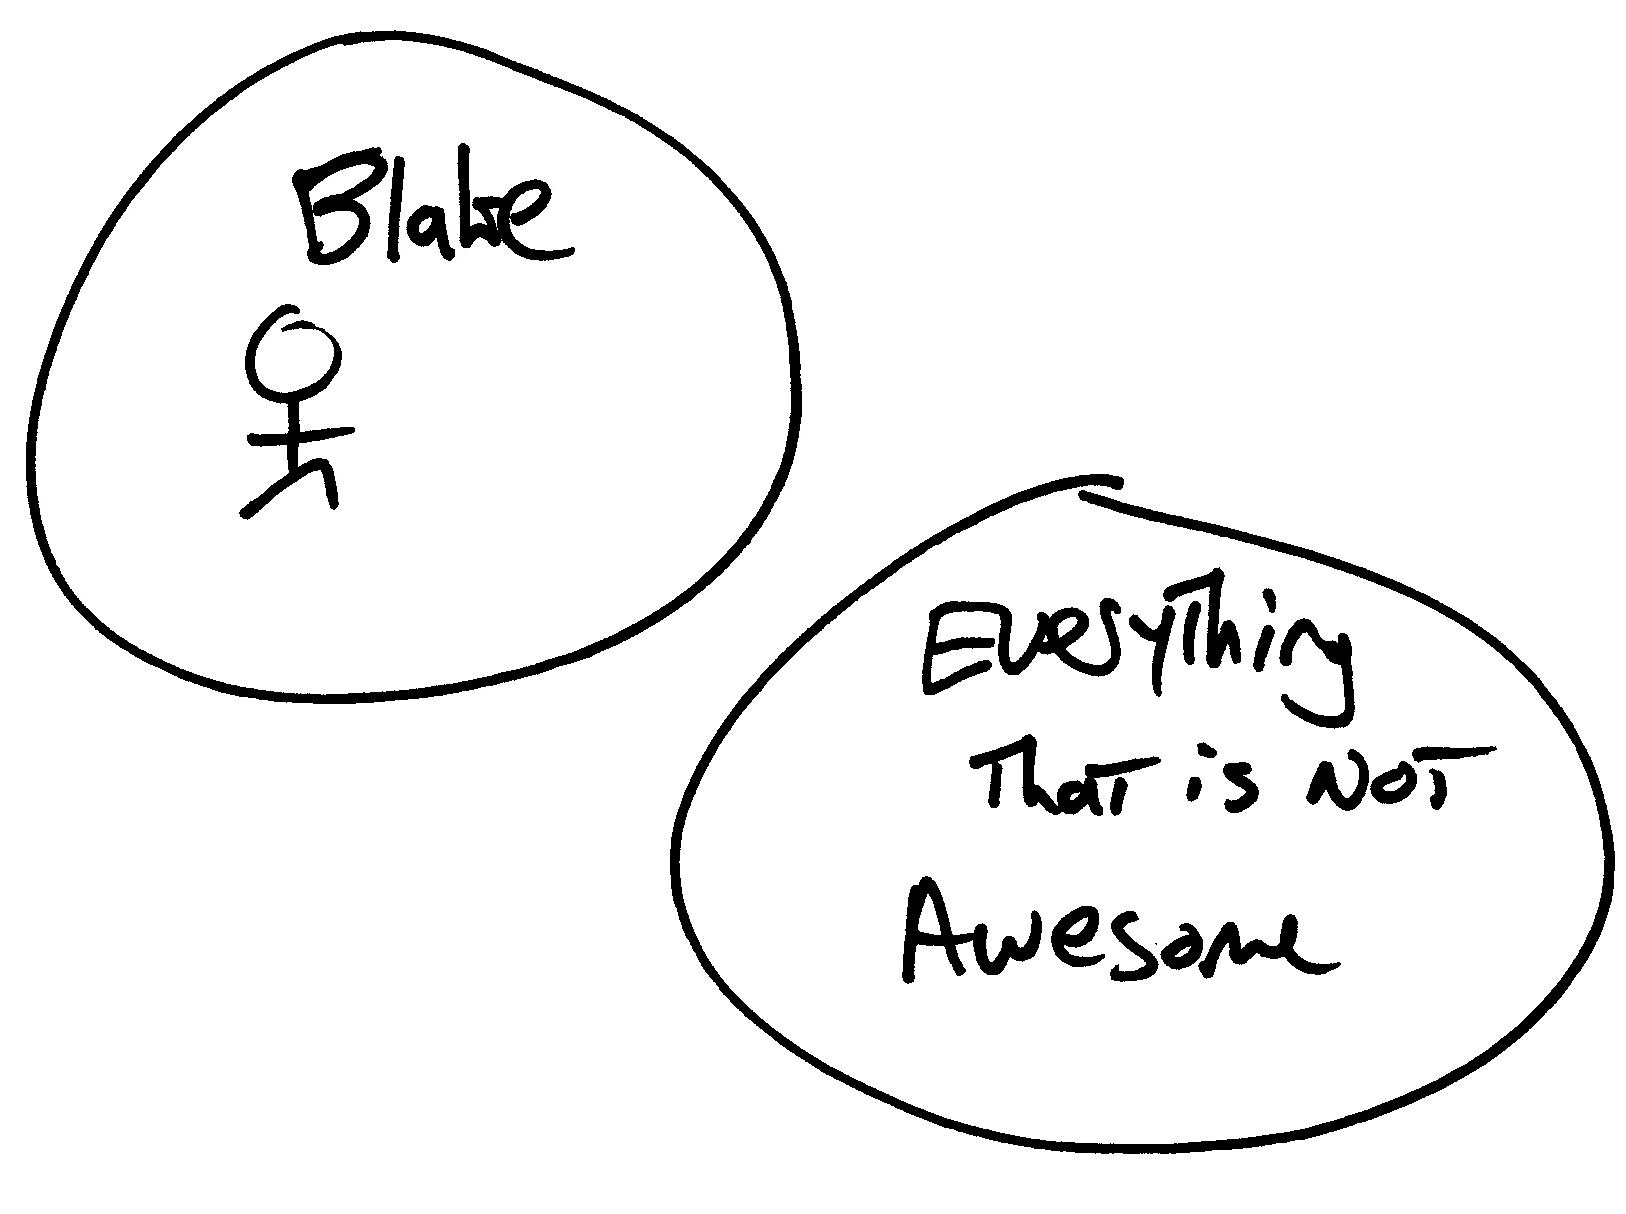 blake vs awesome